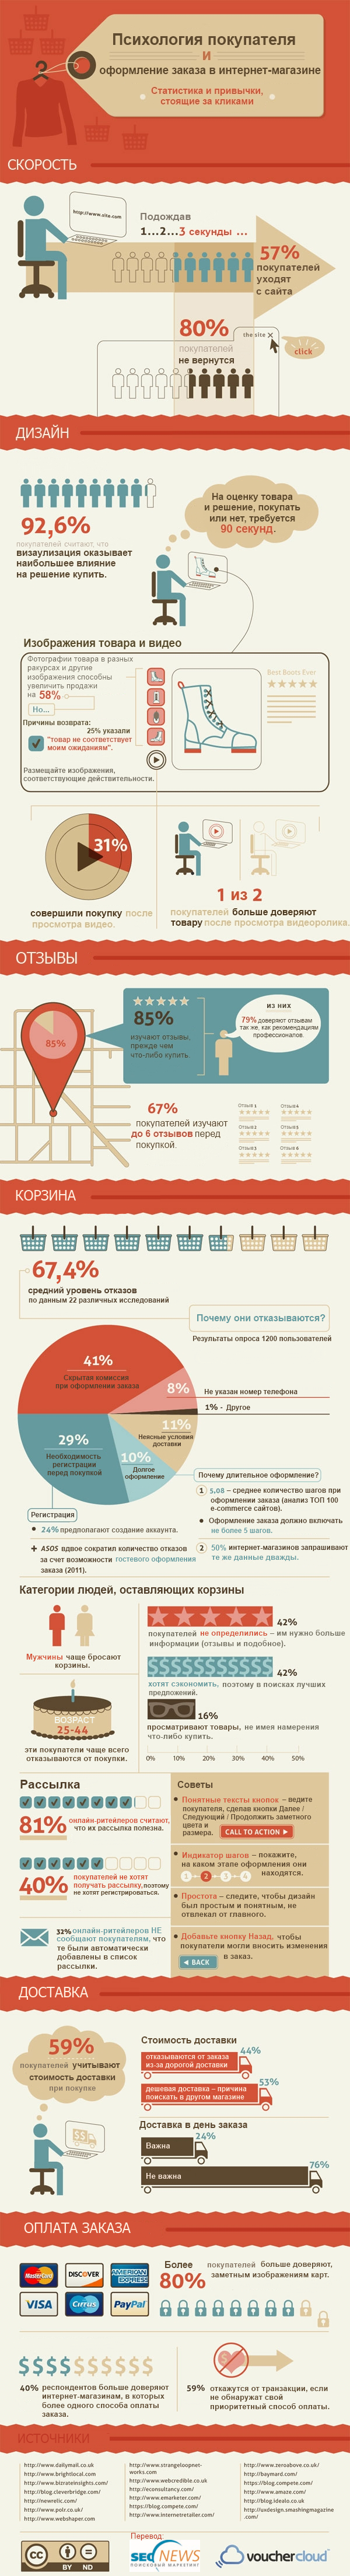 psychology-of-online-checkout-infographic_main.png